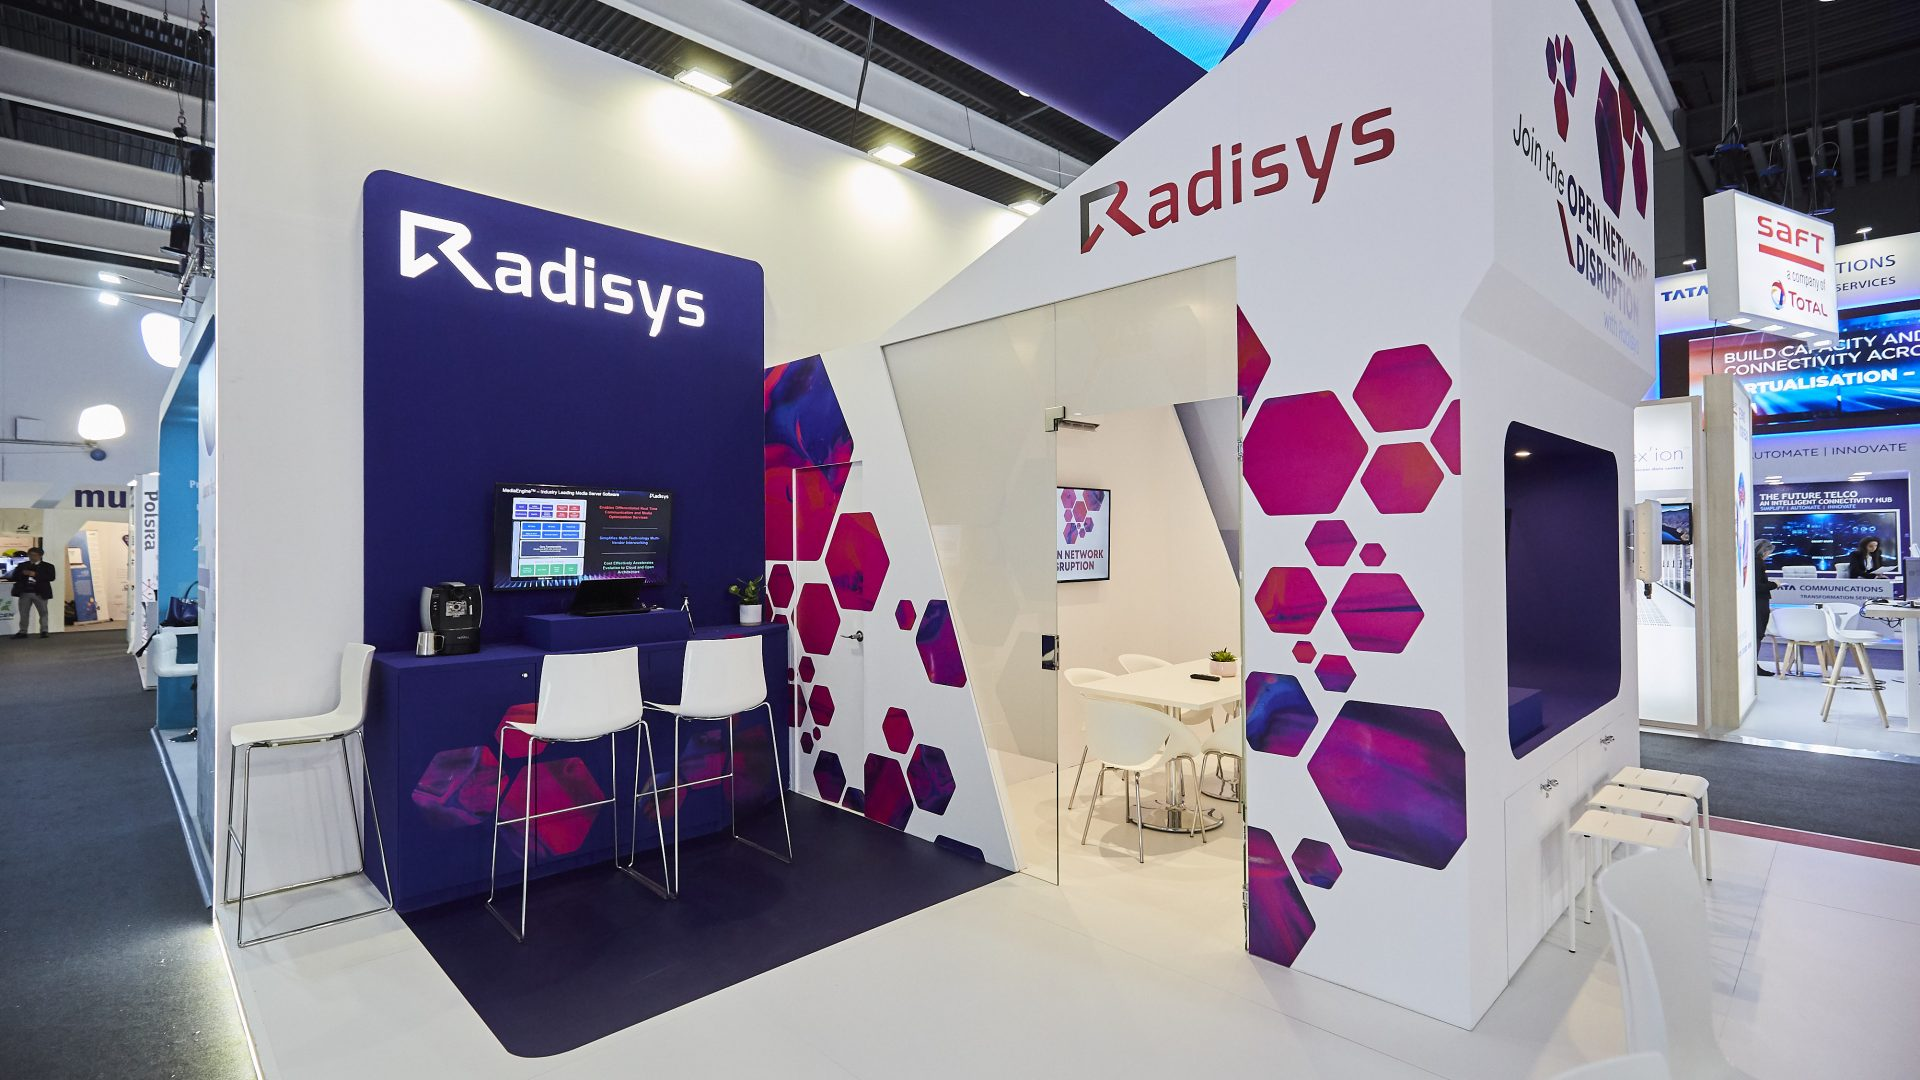 Radisys booth at MWC 2019 - clean and crisp design